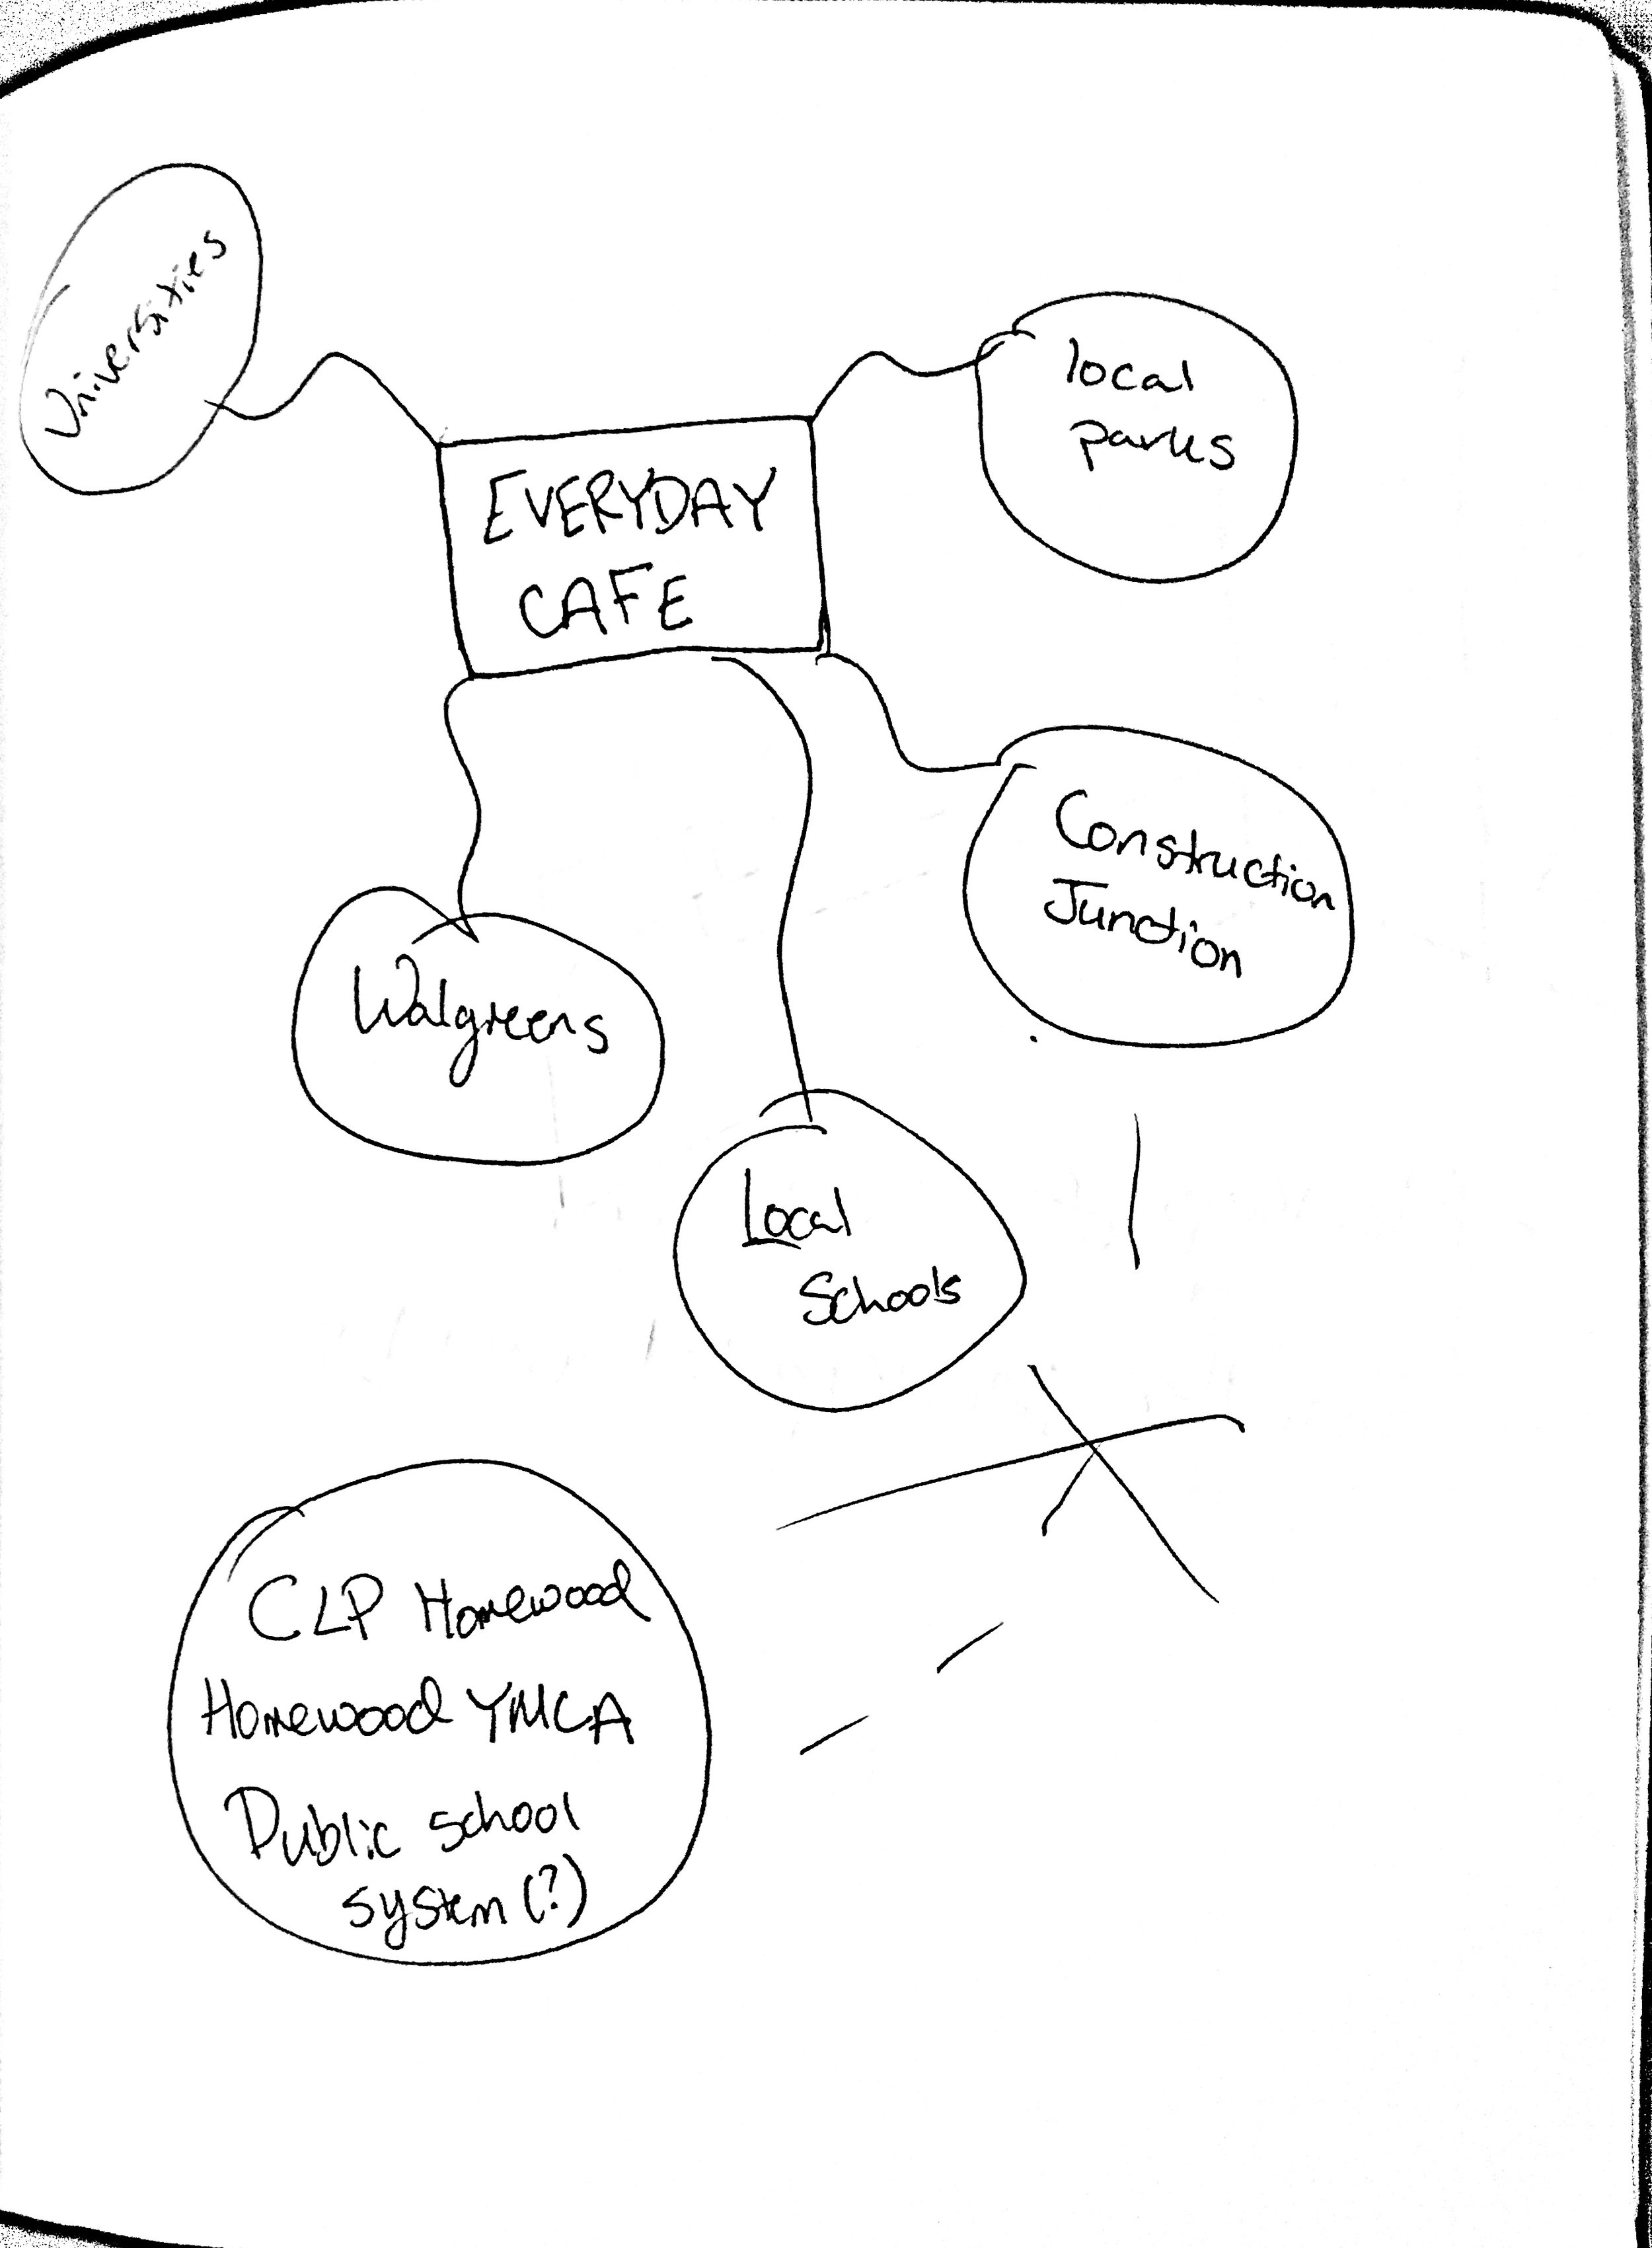 Network sketch (click to enlarge)